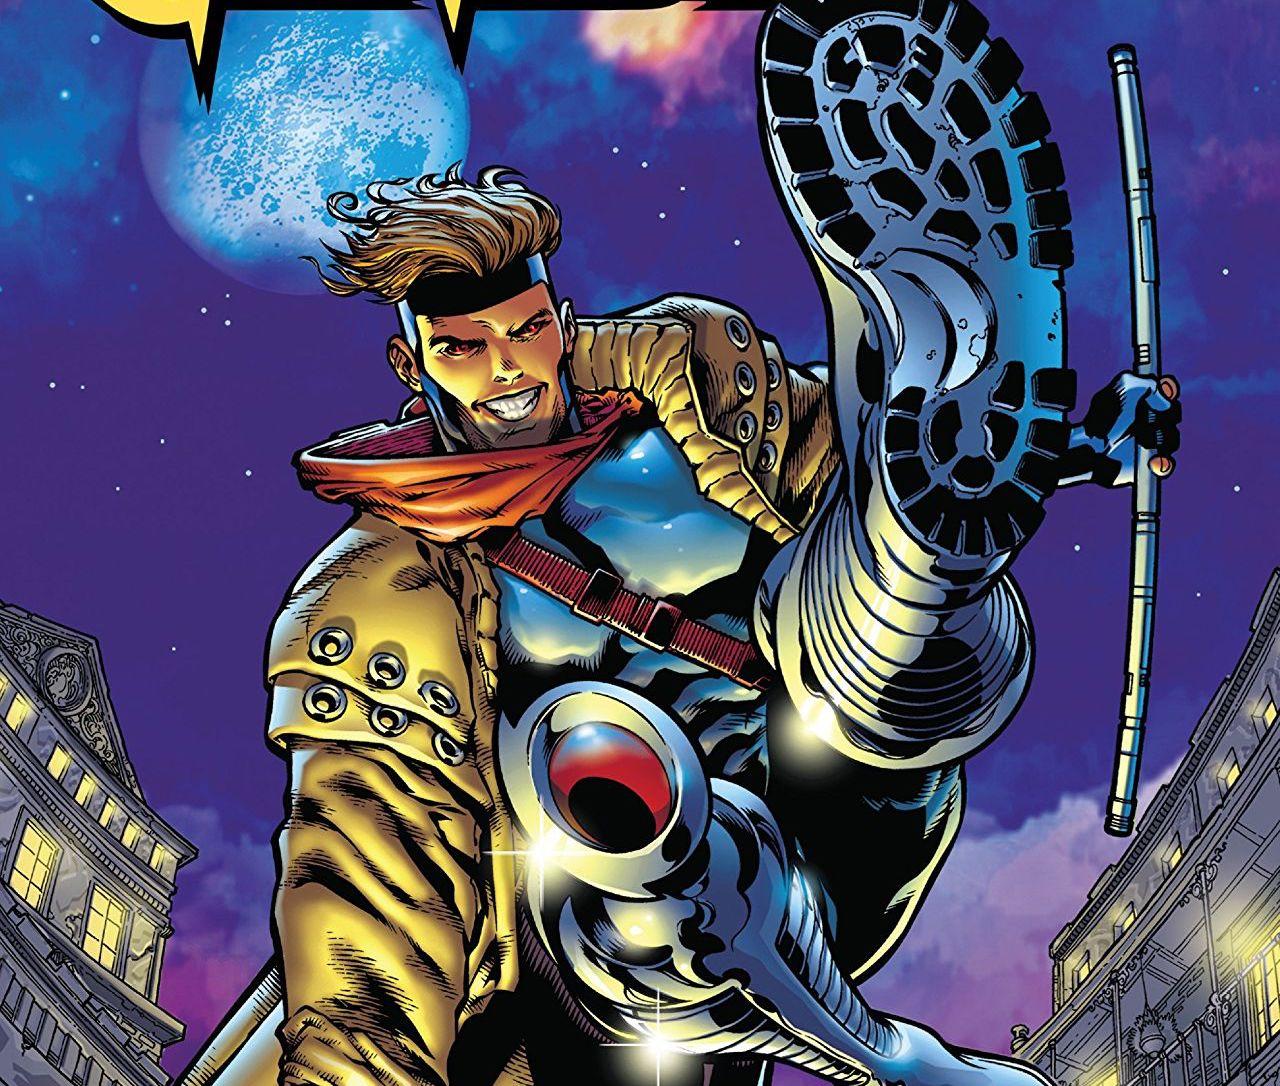 Completists will want to take a look at Marvel's recent Gambit collection with some major story tidbits worth noting.